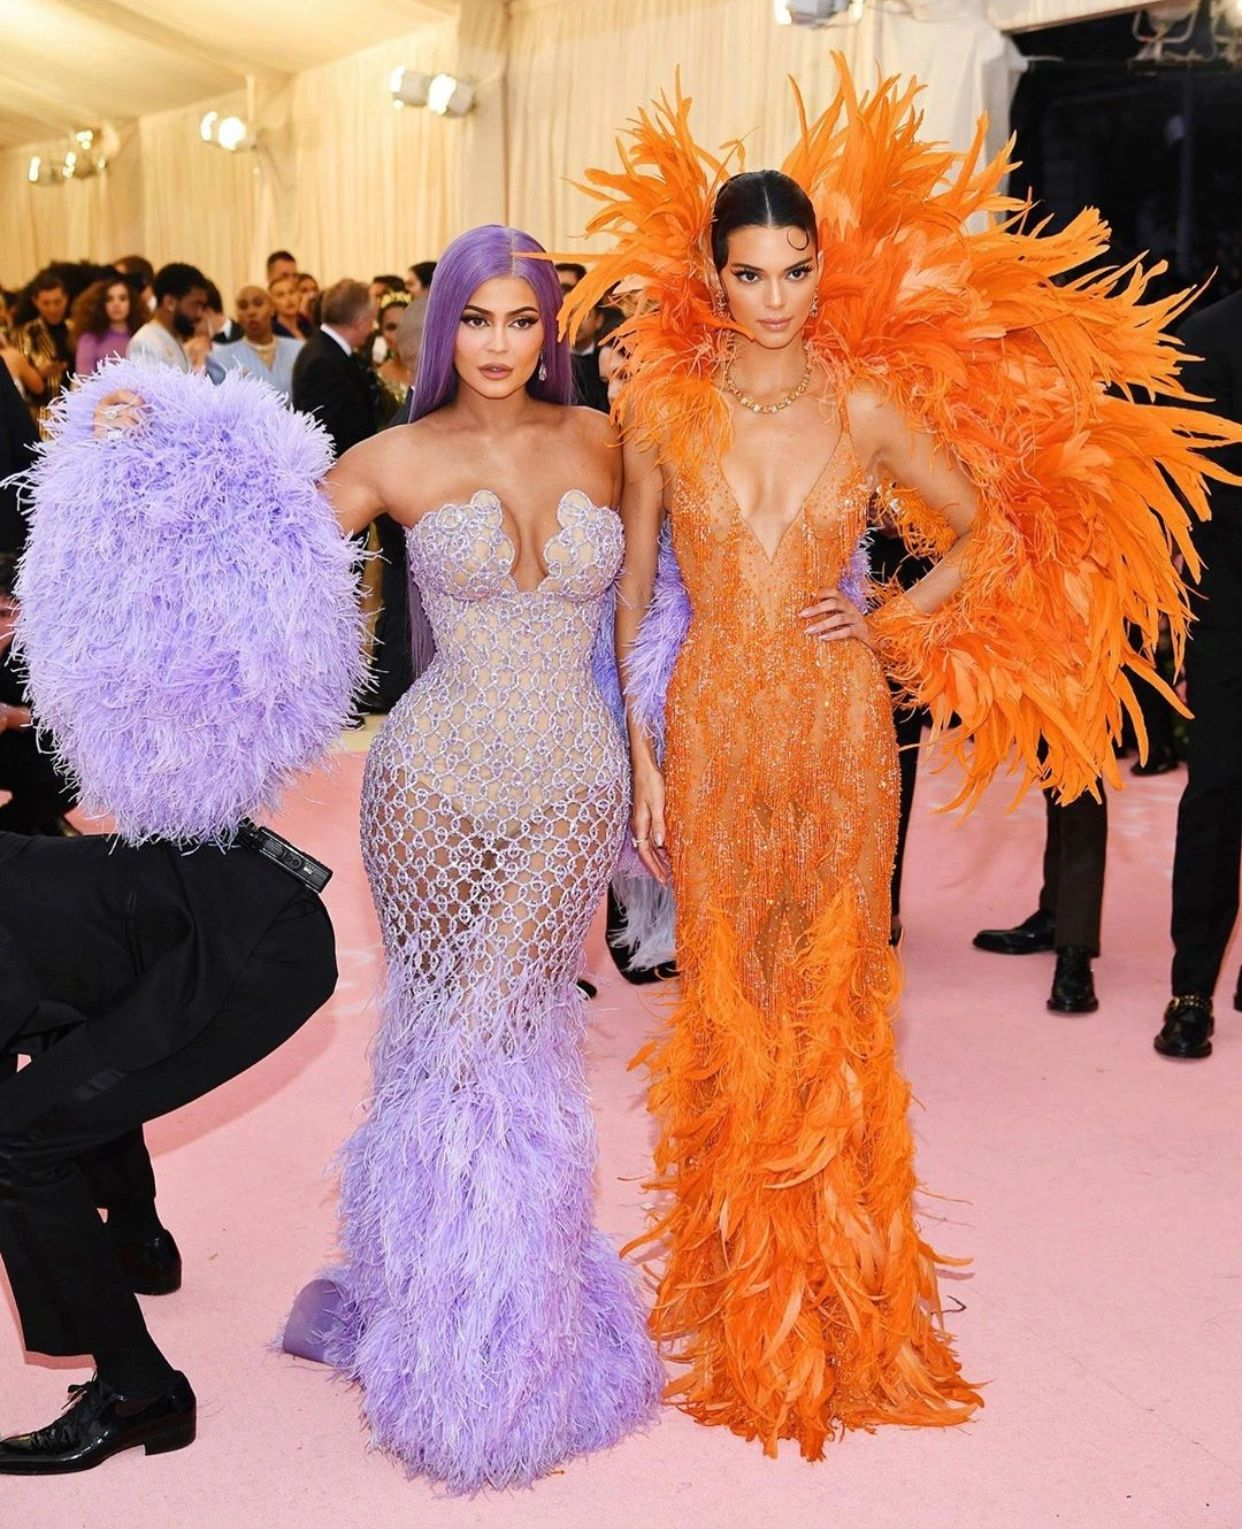 Met Gala, 2019: Kylie Jenner & Kendall Jenner. (Getty Images)